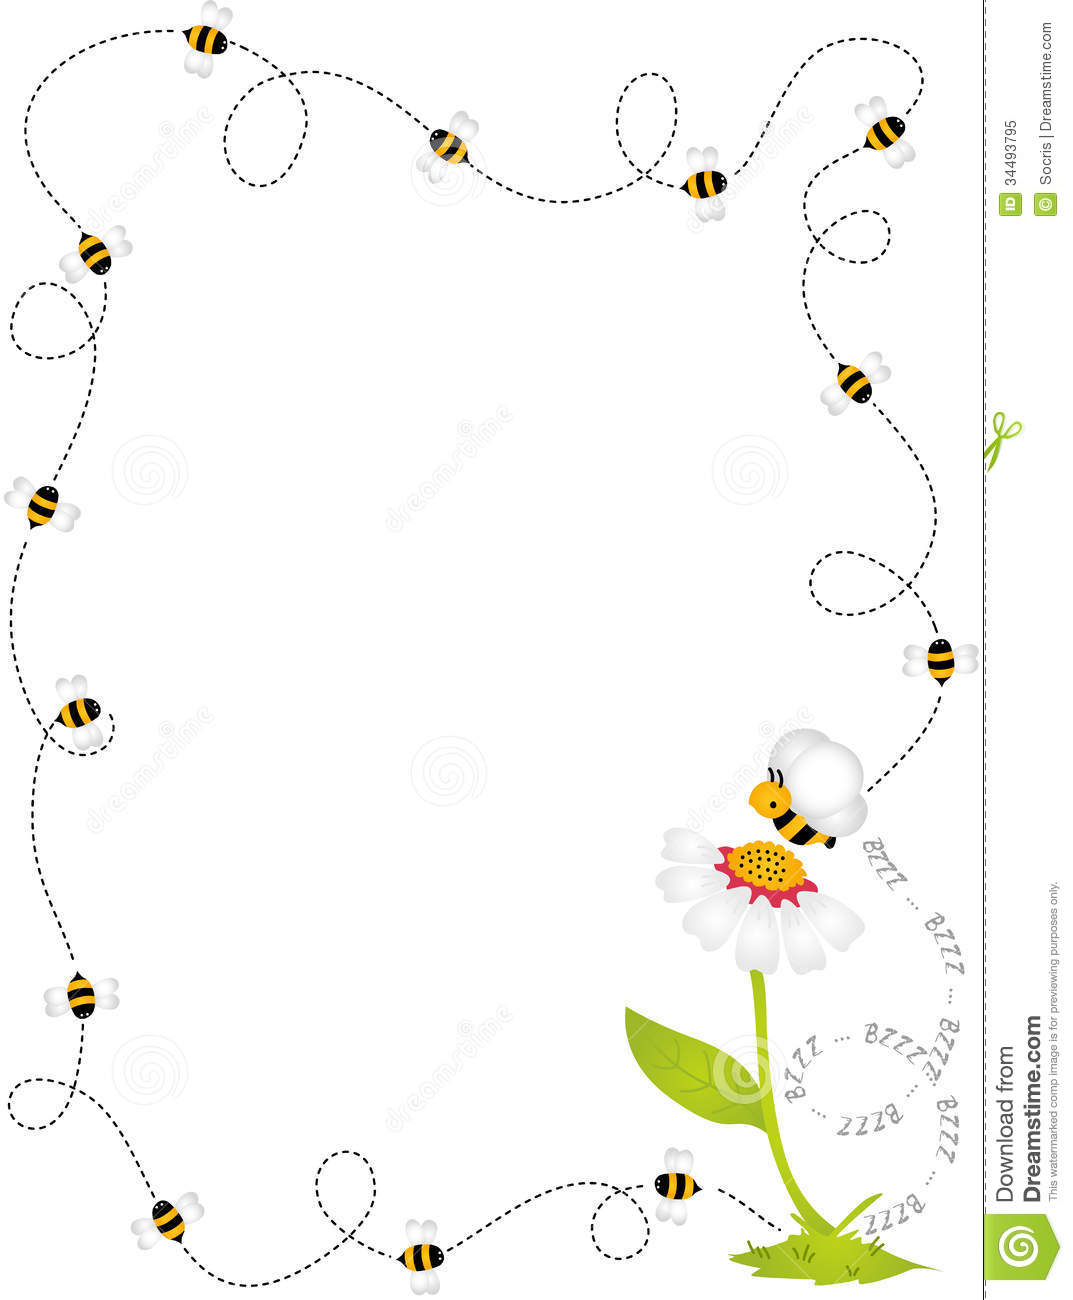 Free Printable Bumble Bee Border furthermore Pictures Of Cool Easy Things To Draw as well Peace Sign Coloring Pages Best besides Star Wars Cartoon Stars daUiSVMF5WqPViHPOaqLlSRicxyWJMCldfxQEppcfho additionally Thank You For Listening Quotes. on funny animated birthday clip art